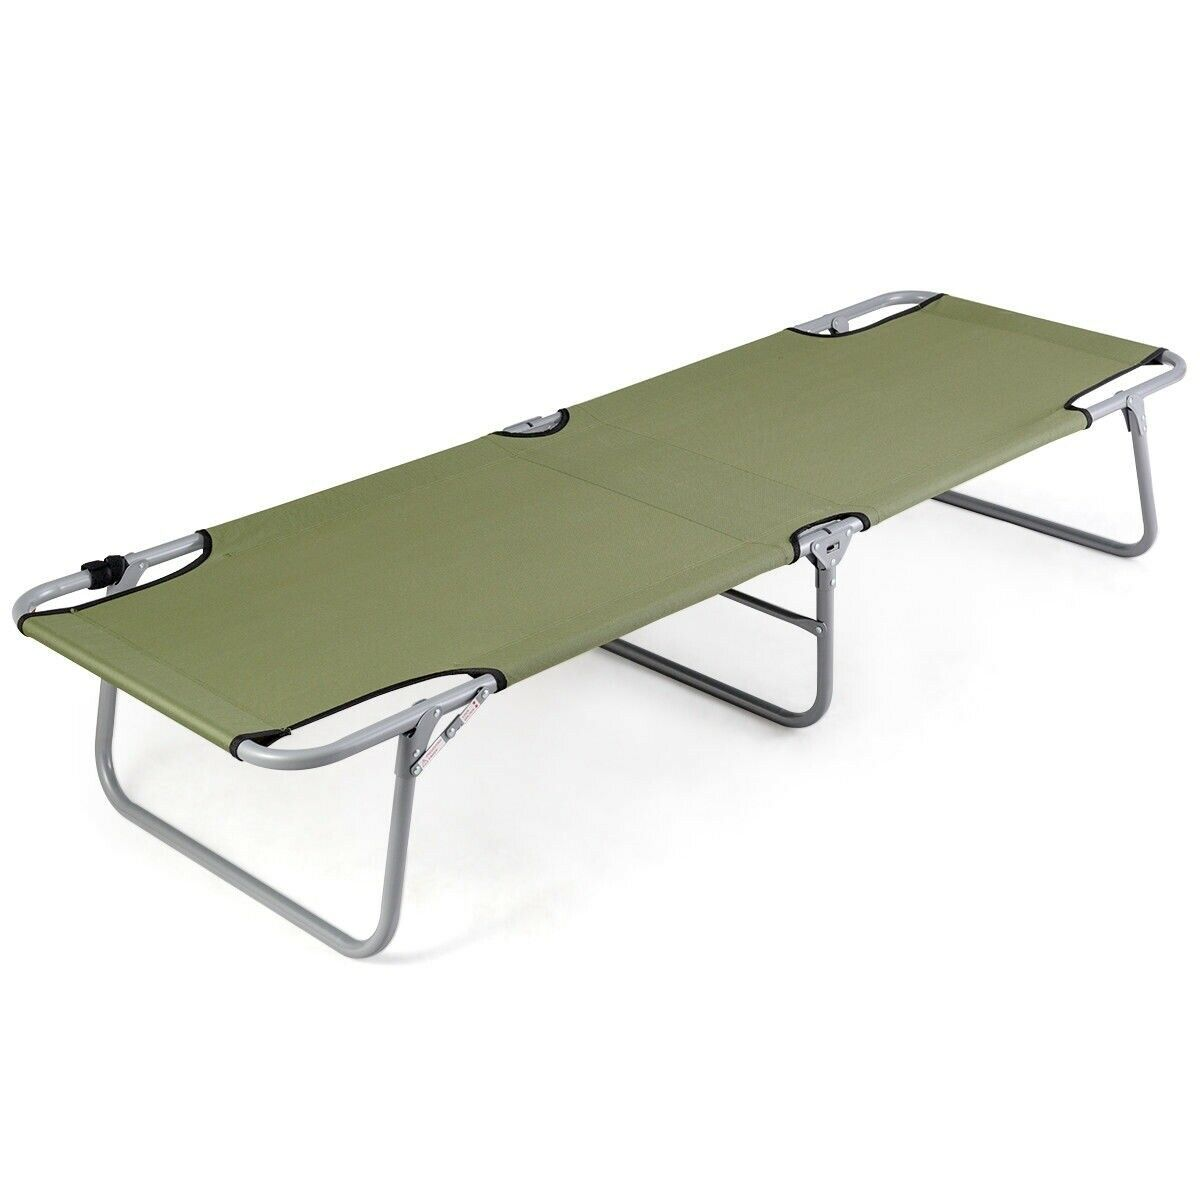 portable Folding Camping Bed Durable toile Army vert Military Type Cot